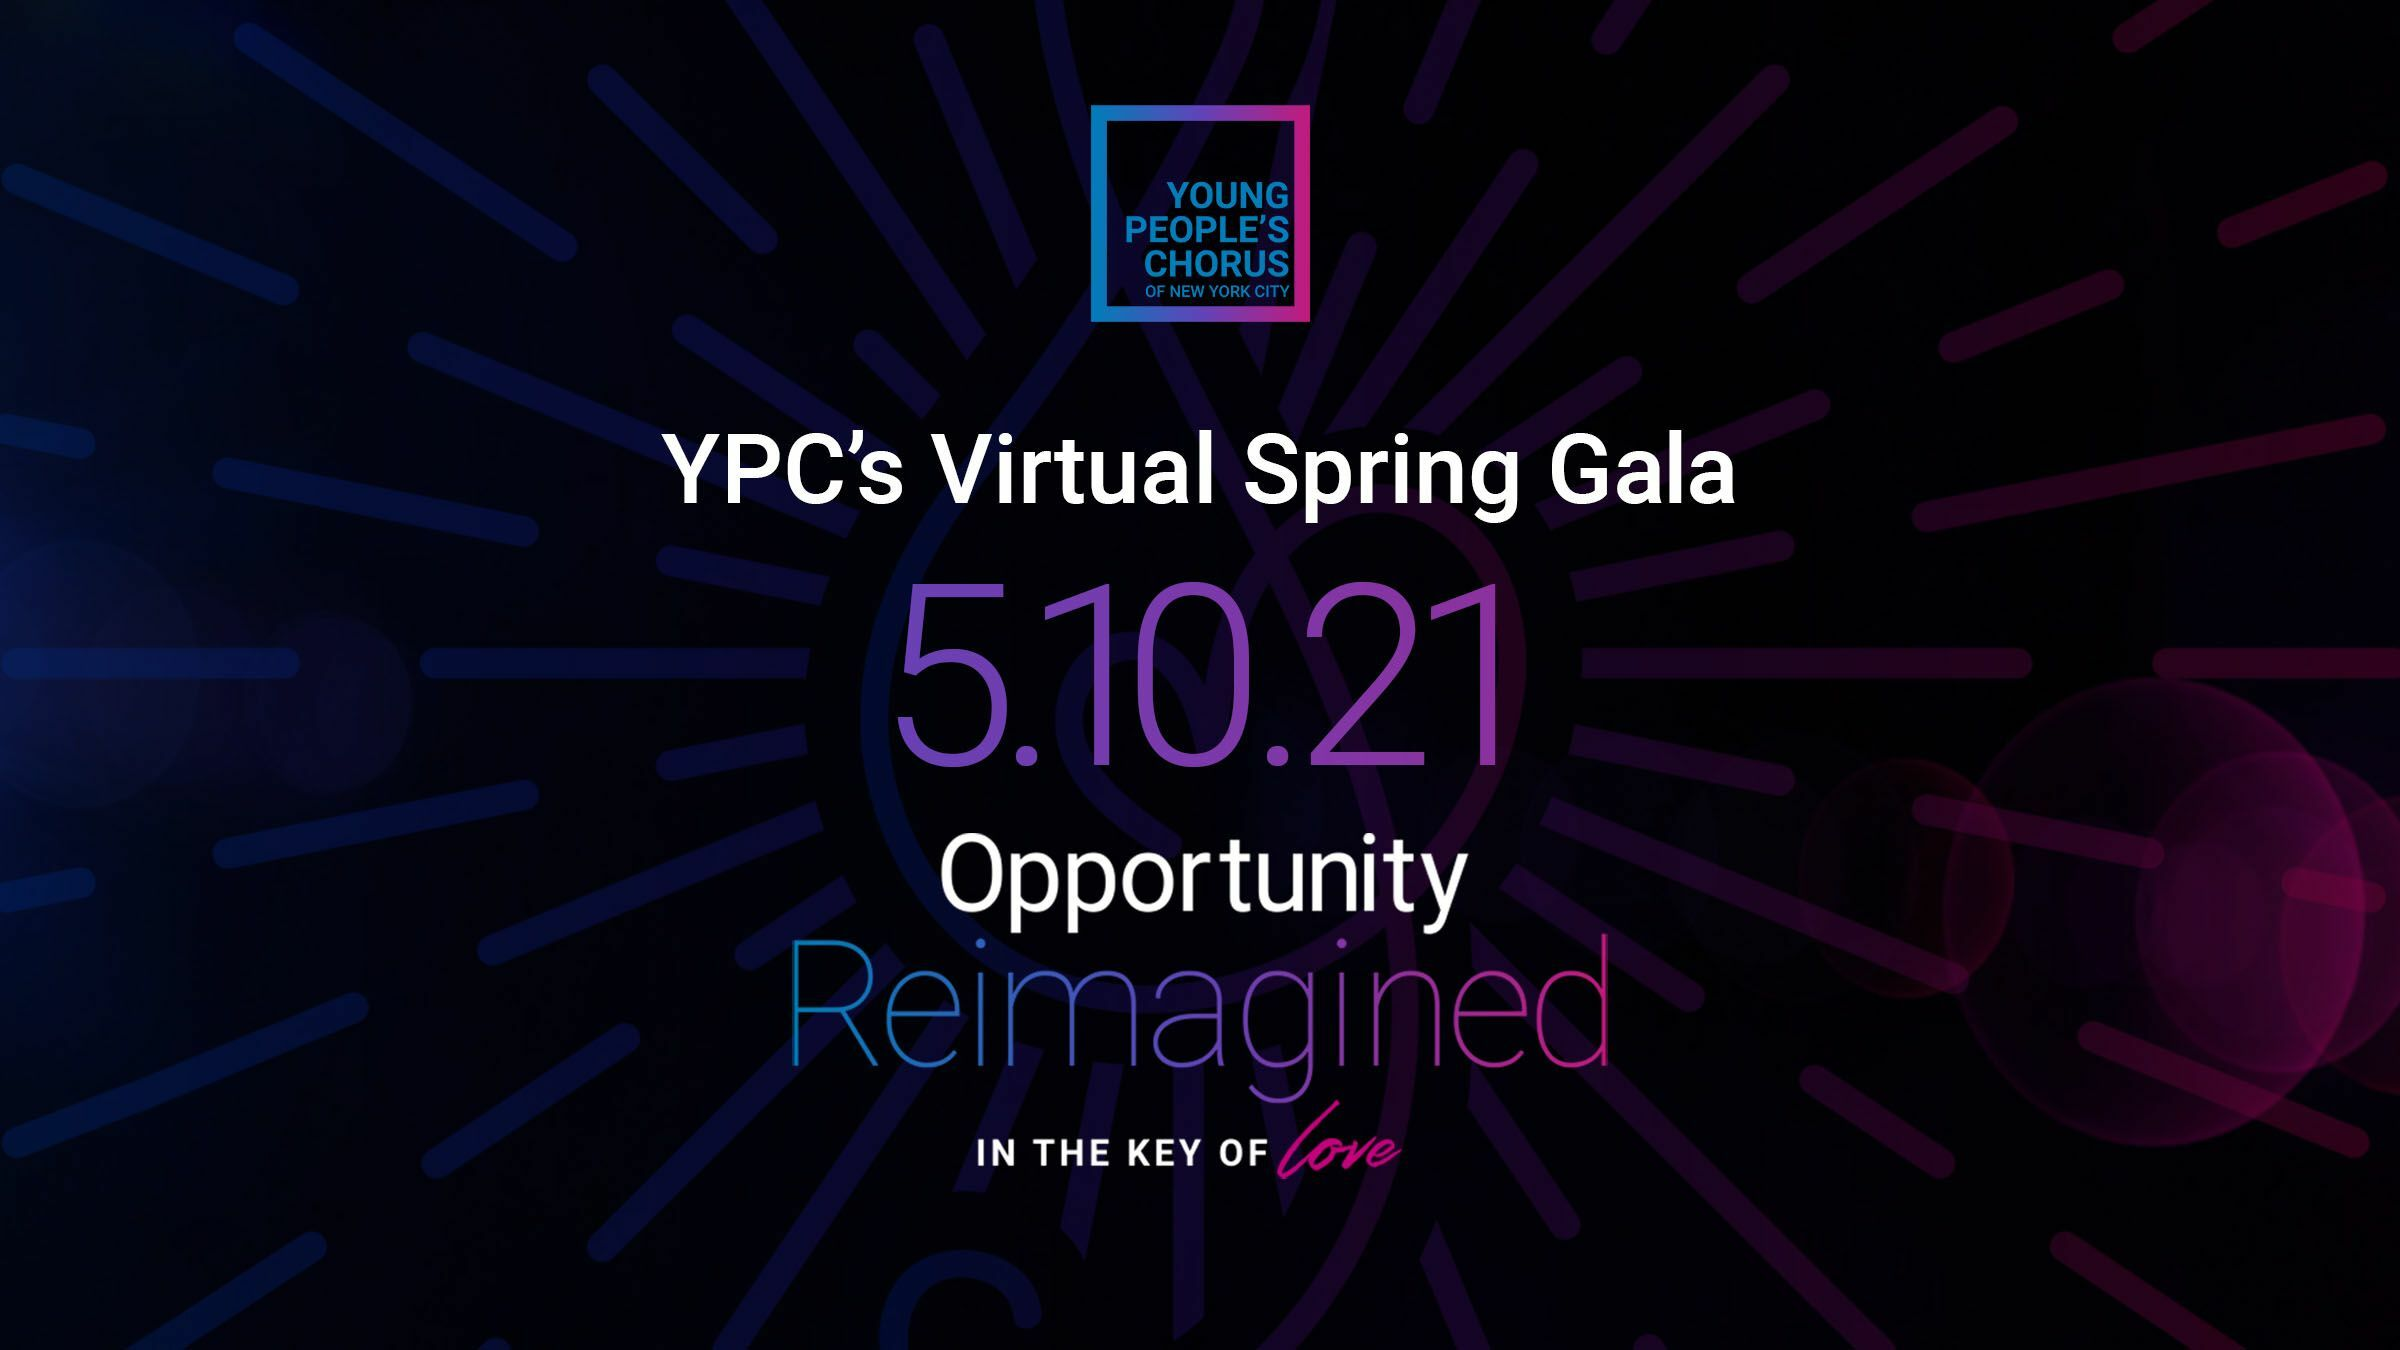 Opportunity Reimagined: YPC's Virtual Spring Gala